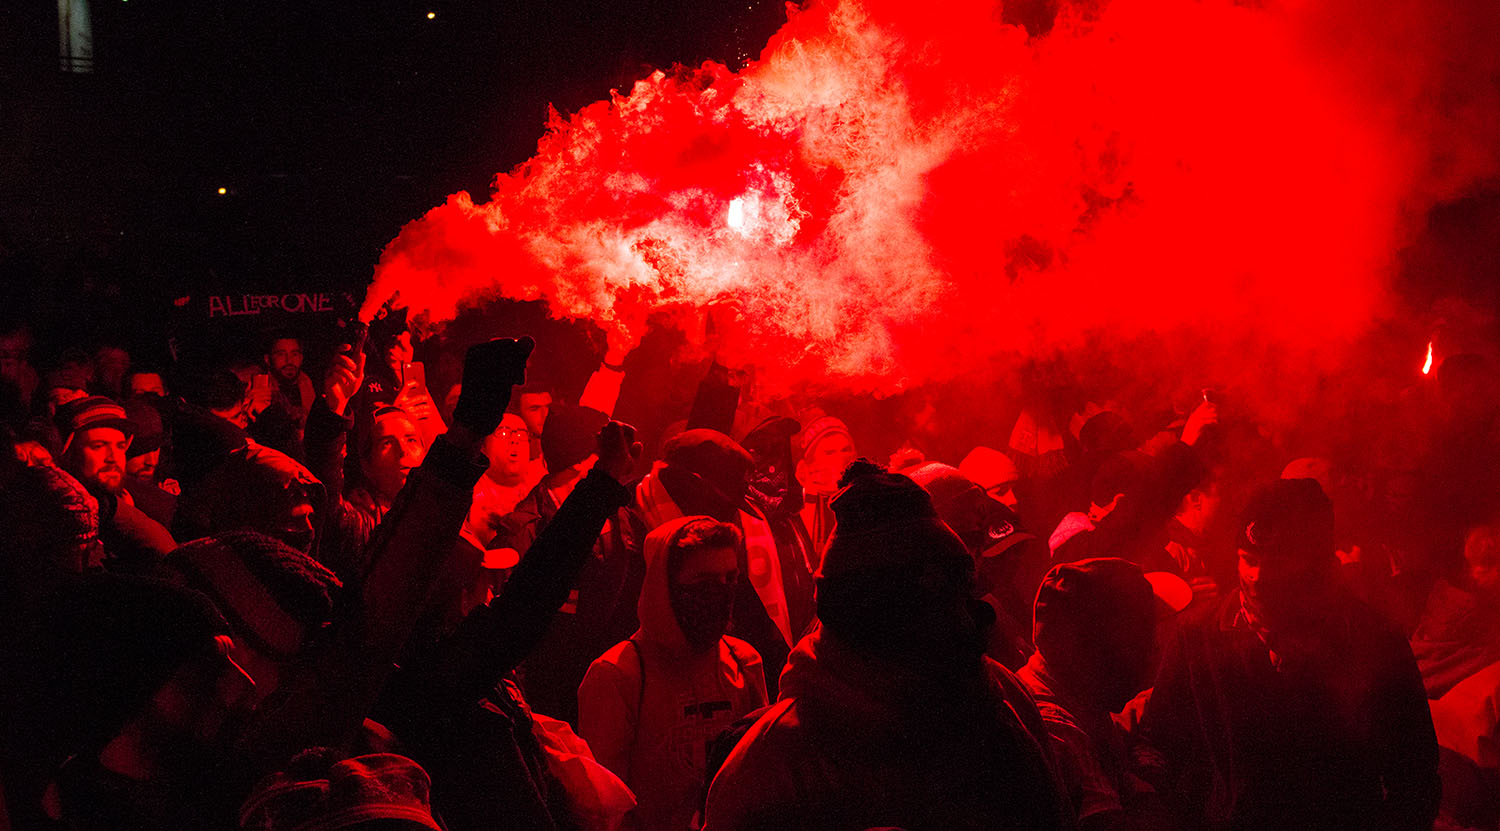 Toronto FC supporters lighting flares and smoke in front of BMO Field during that march to the match ahead of the Major League Soccer Eastern Conference Final.Image by Dennis Marciniak of denMAR Media.